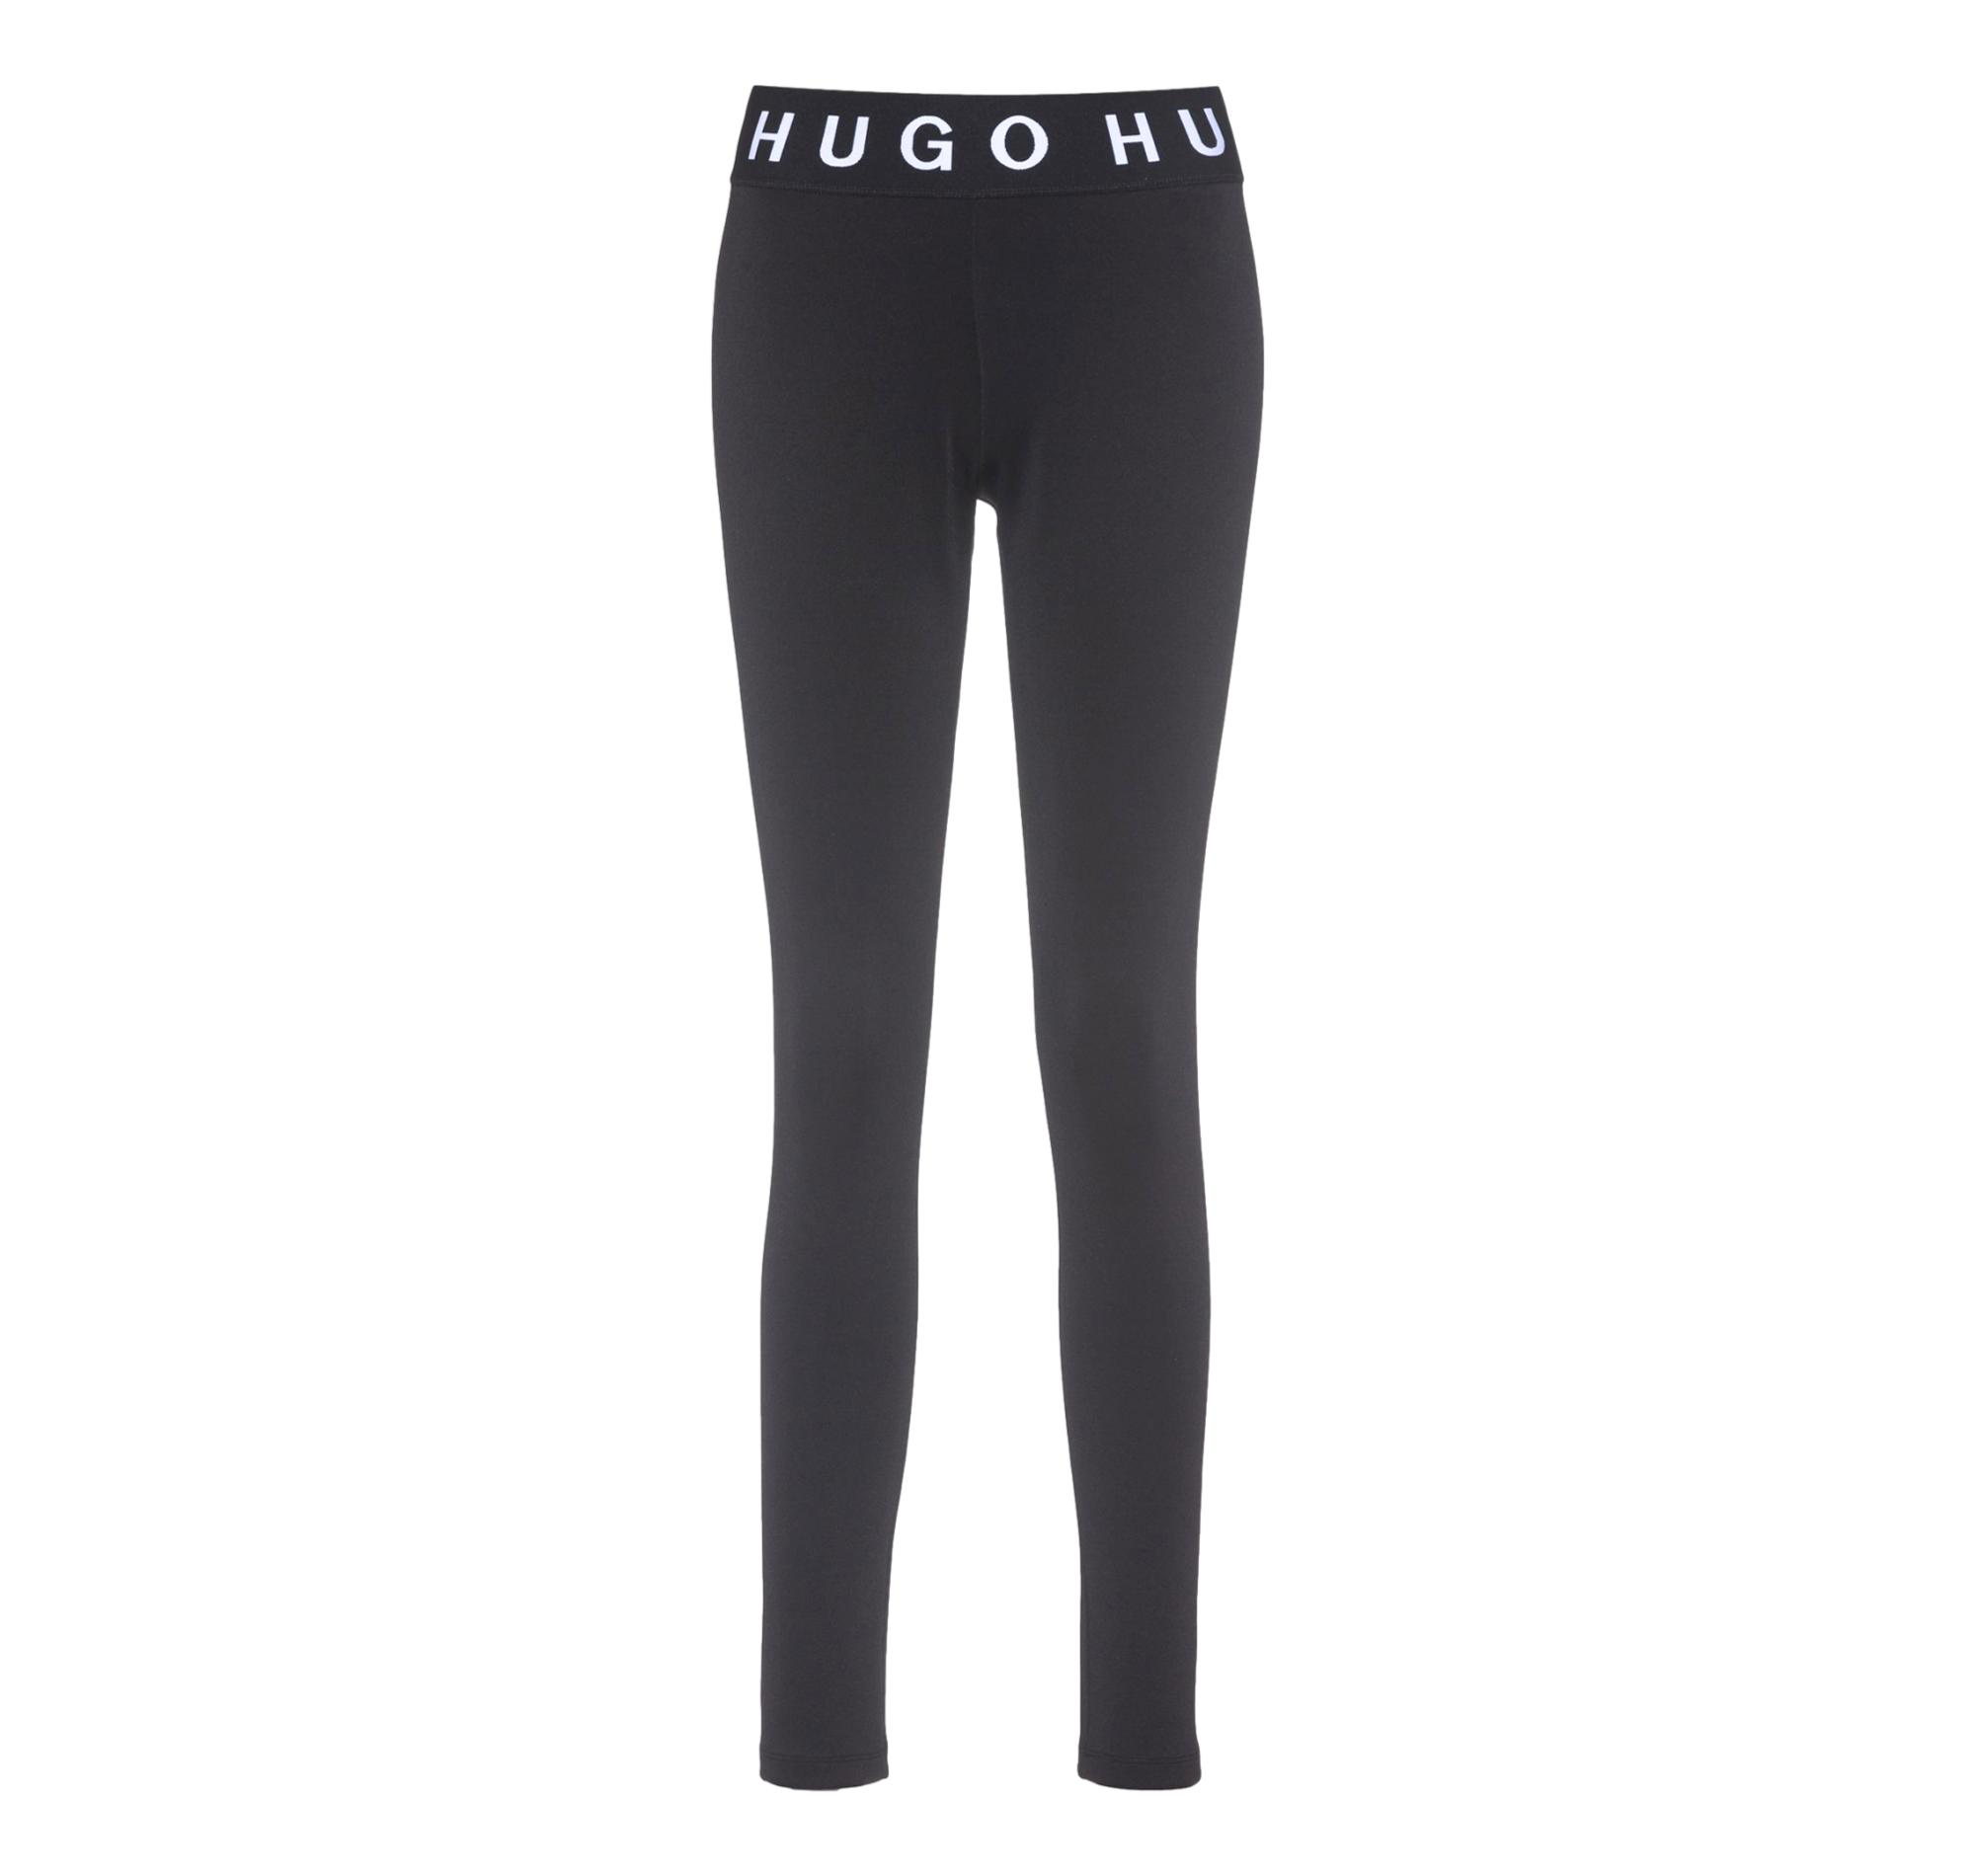 HUGO BOSS Leggings skinny fit con logo a contrasto The HUGO Leggings 50442302